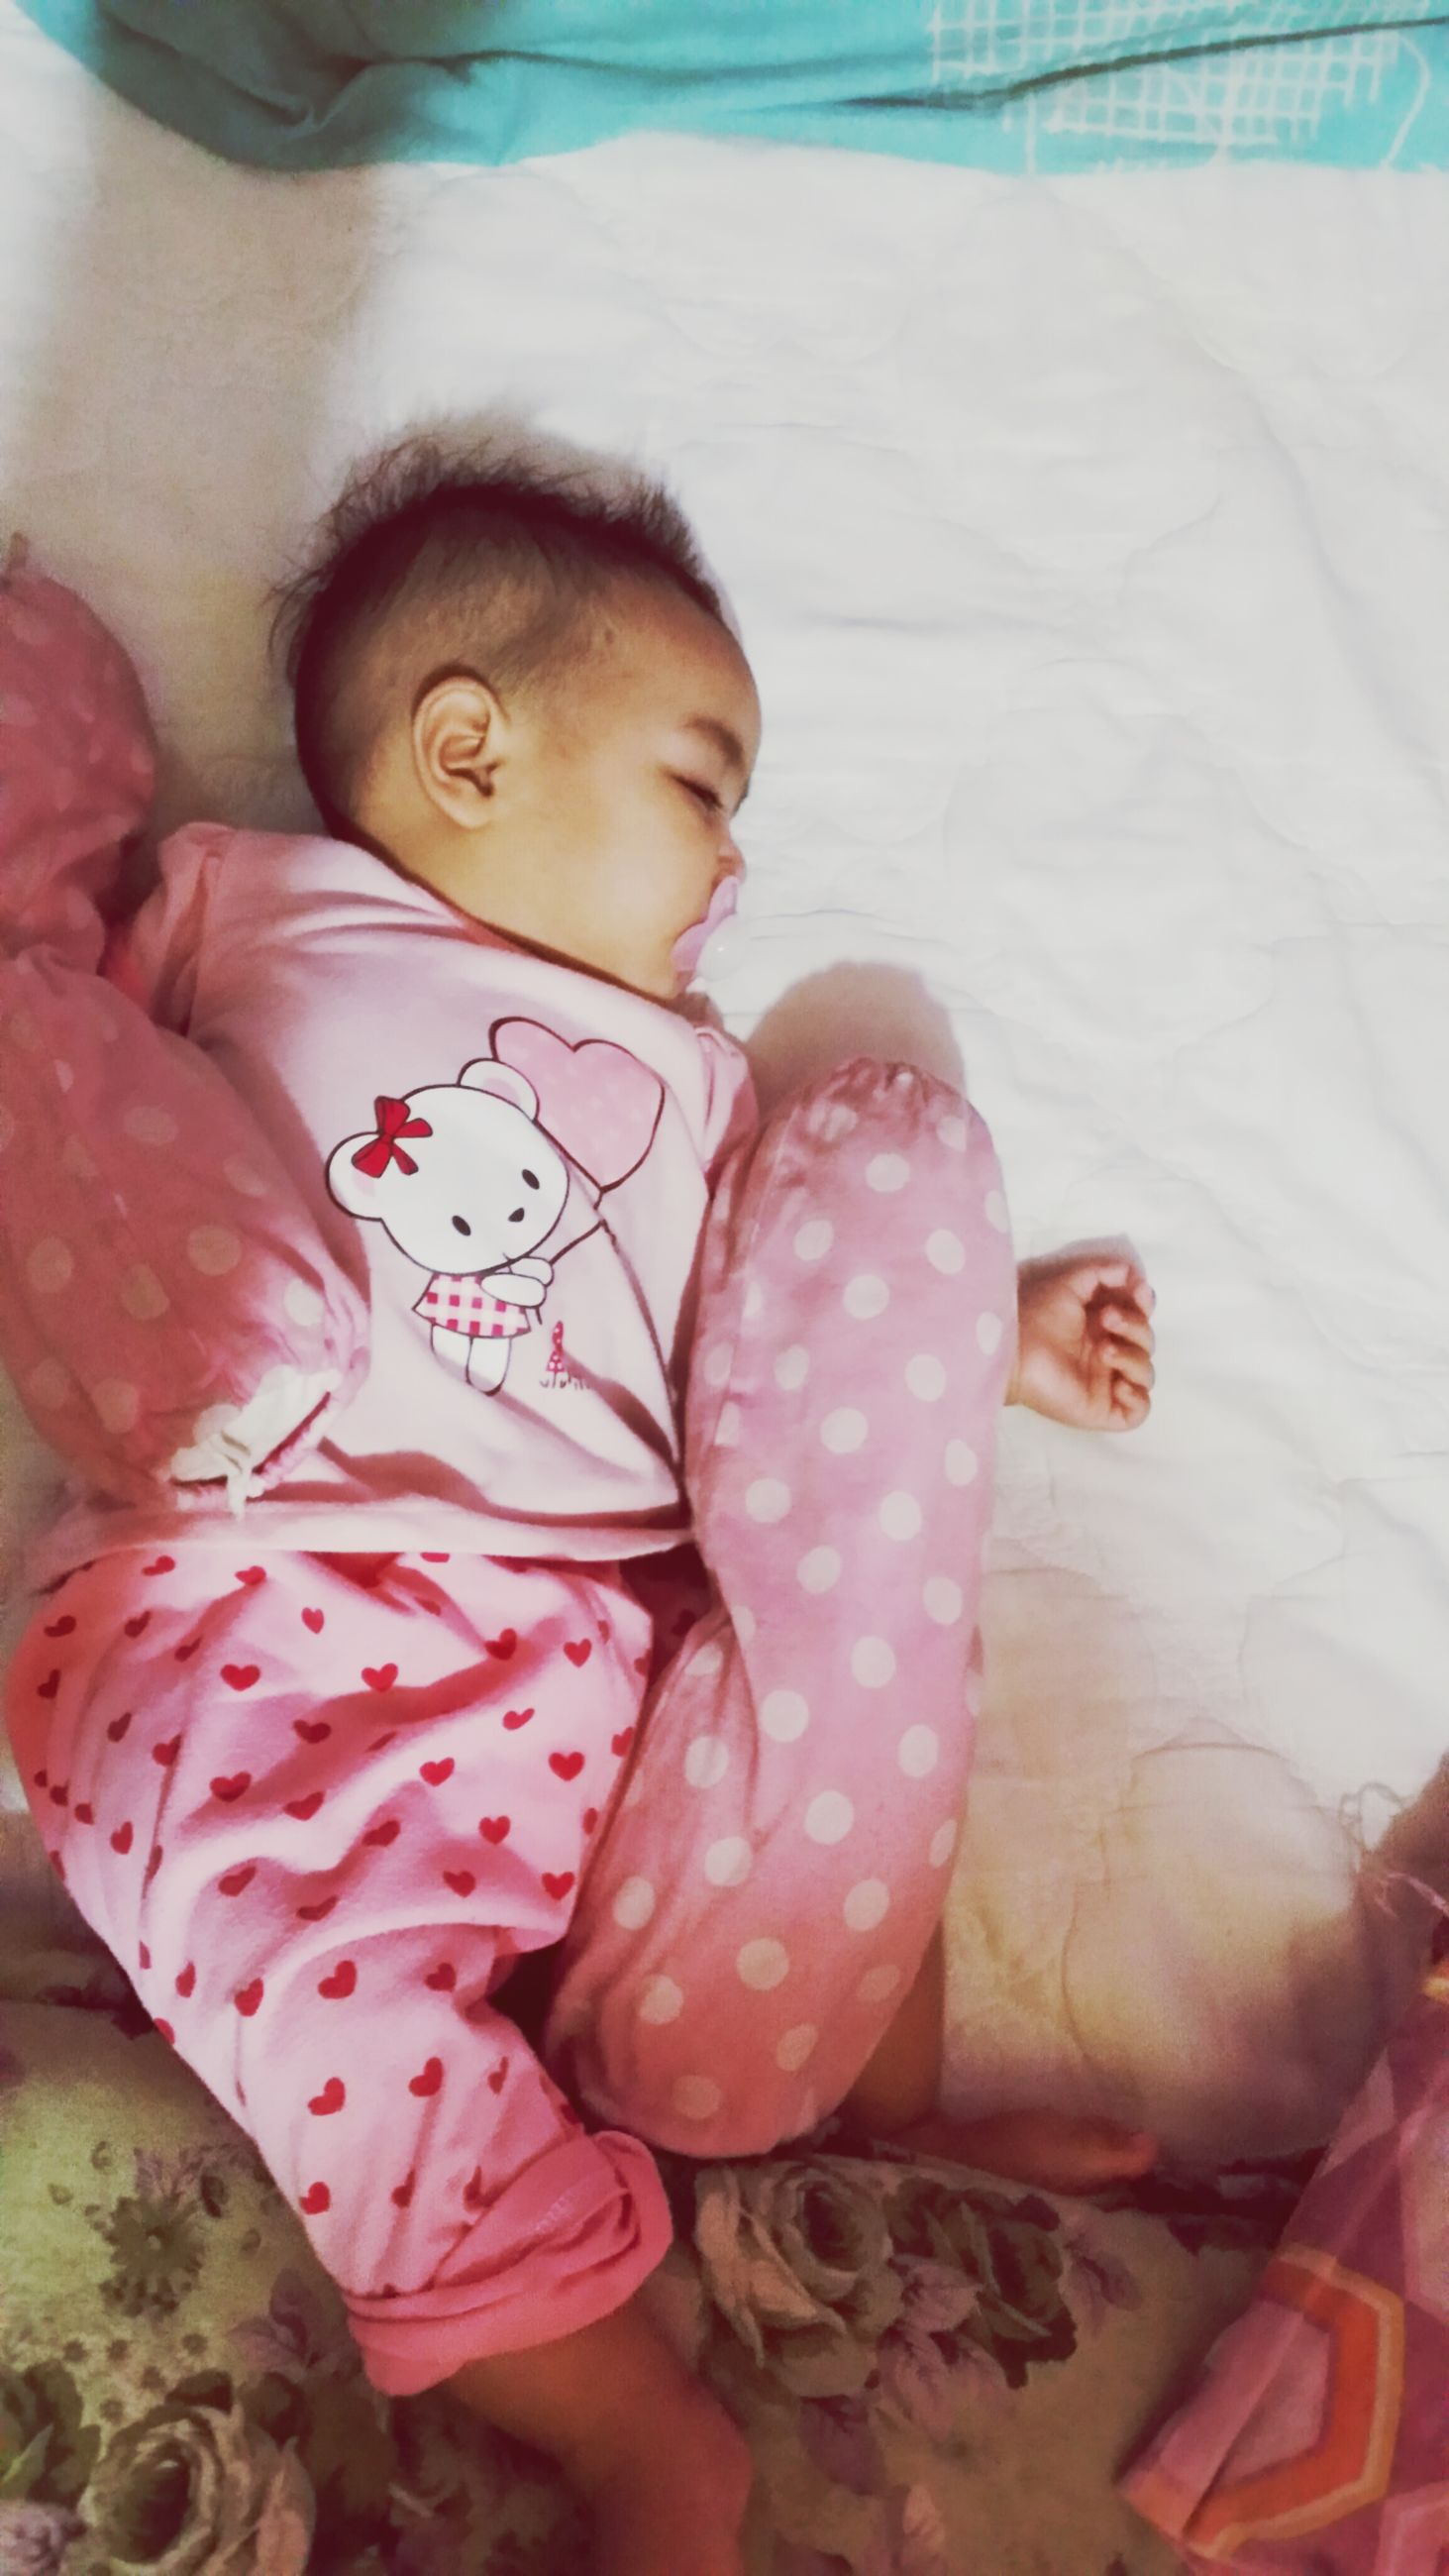 childhood, indoors, lifestyles, person, innocence, baby, elementary age, leisure activity, high angle view, girls, cute, casual clothing, sleeping, relaxation, babyhood, toddler, love, lying down